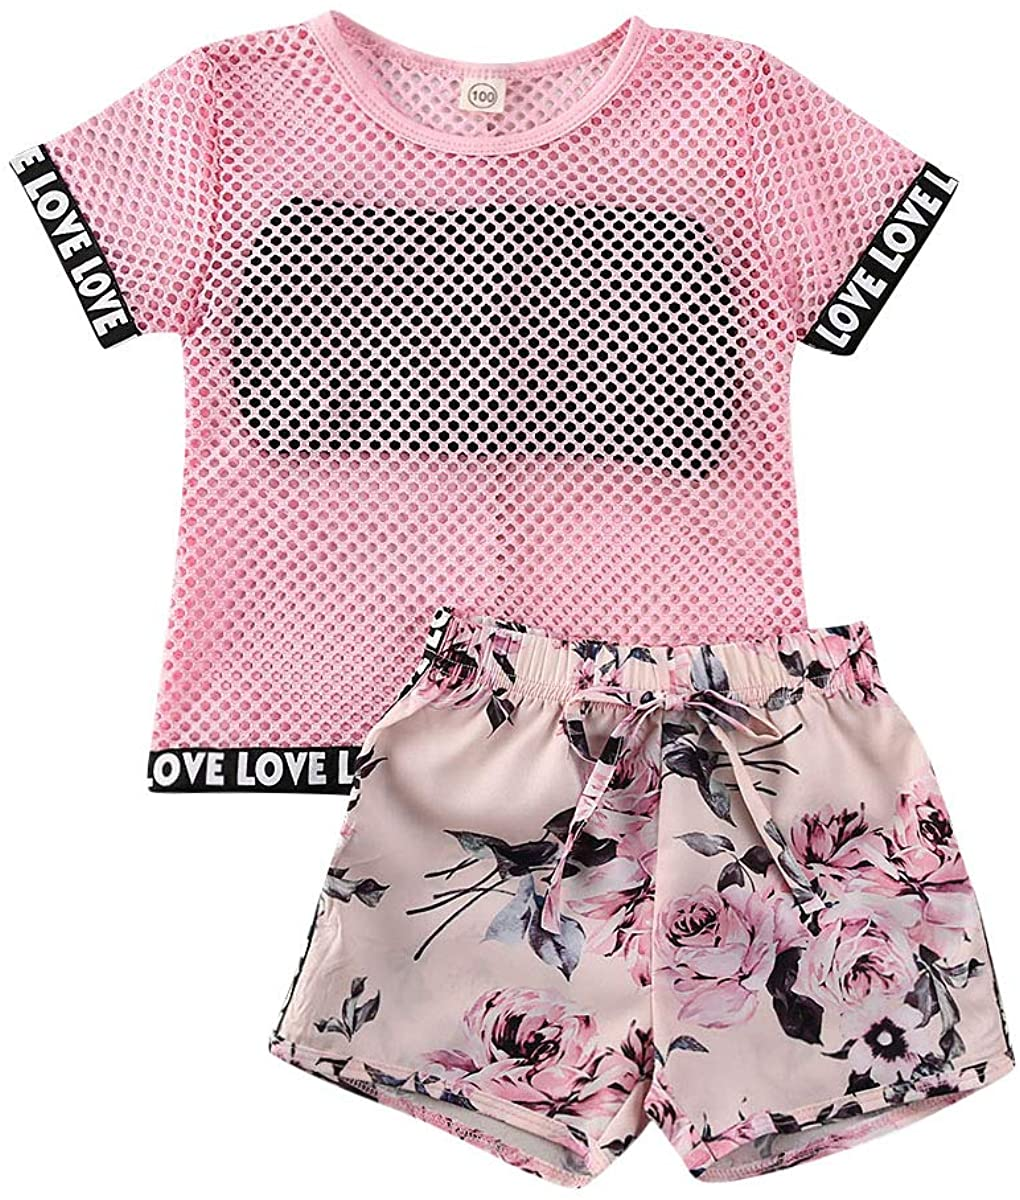 Toddler Girl Mesh Sports Suit Printed Shorts 3-Piece Set with Bodice Belt Loose Lettered Cuffs Short Sleeve